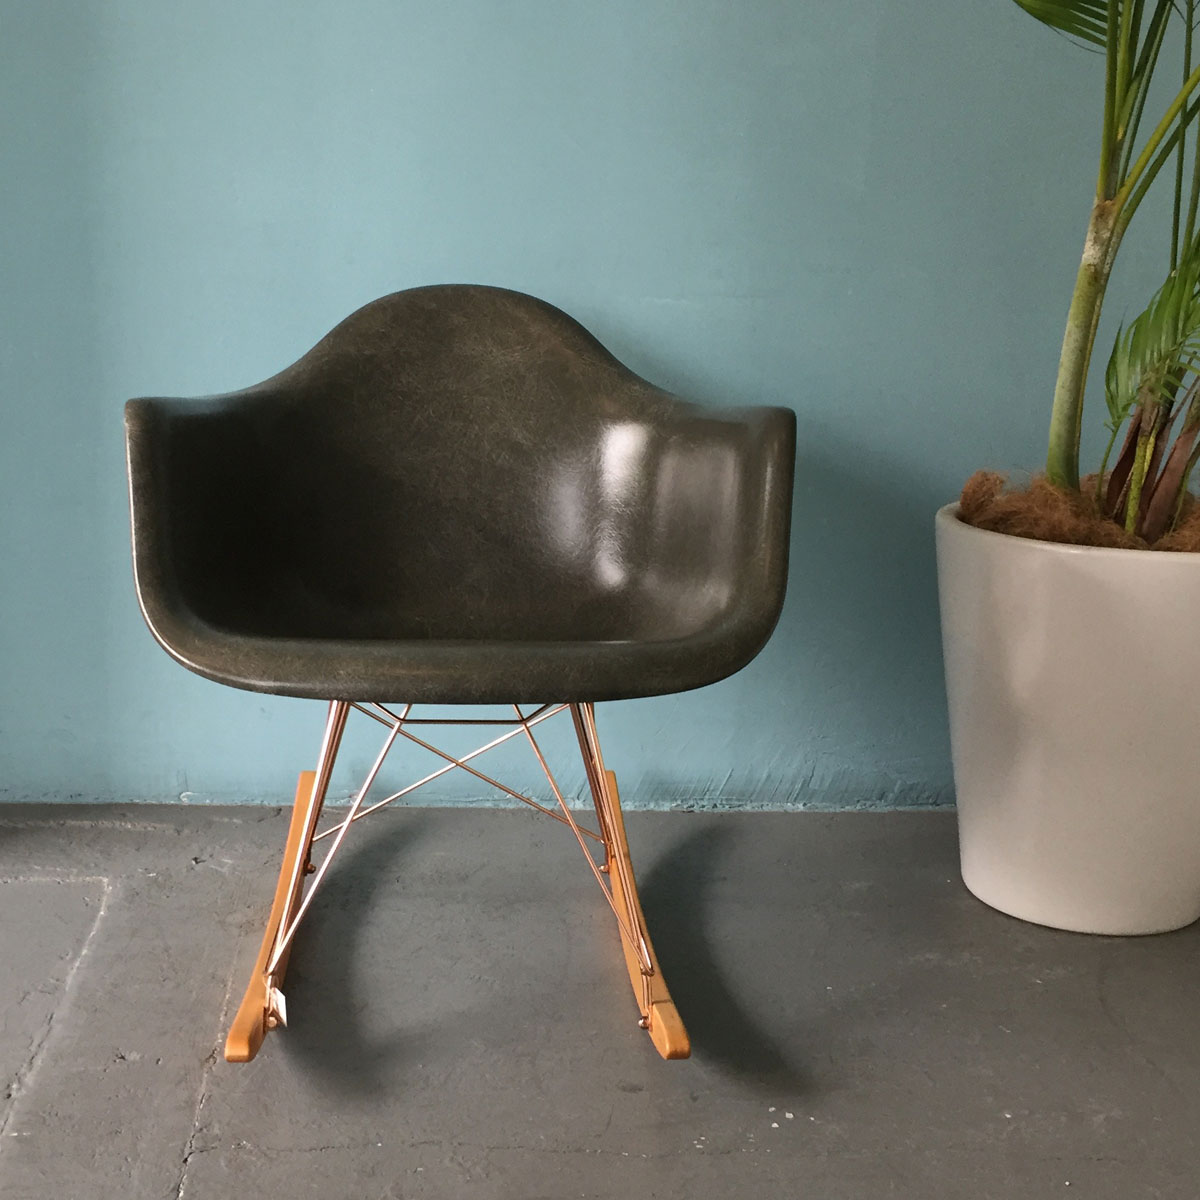 GS FIBERGLASS ARM SHEL ROCKER CHAIR BY MODERNICA okinawa